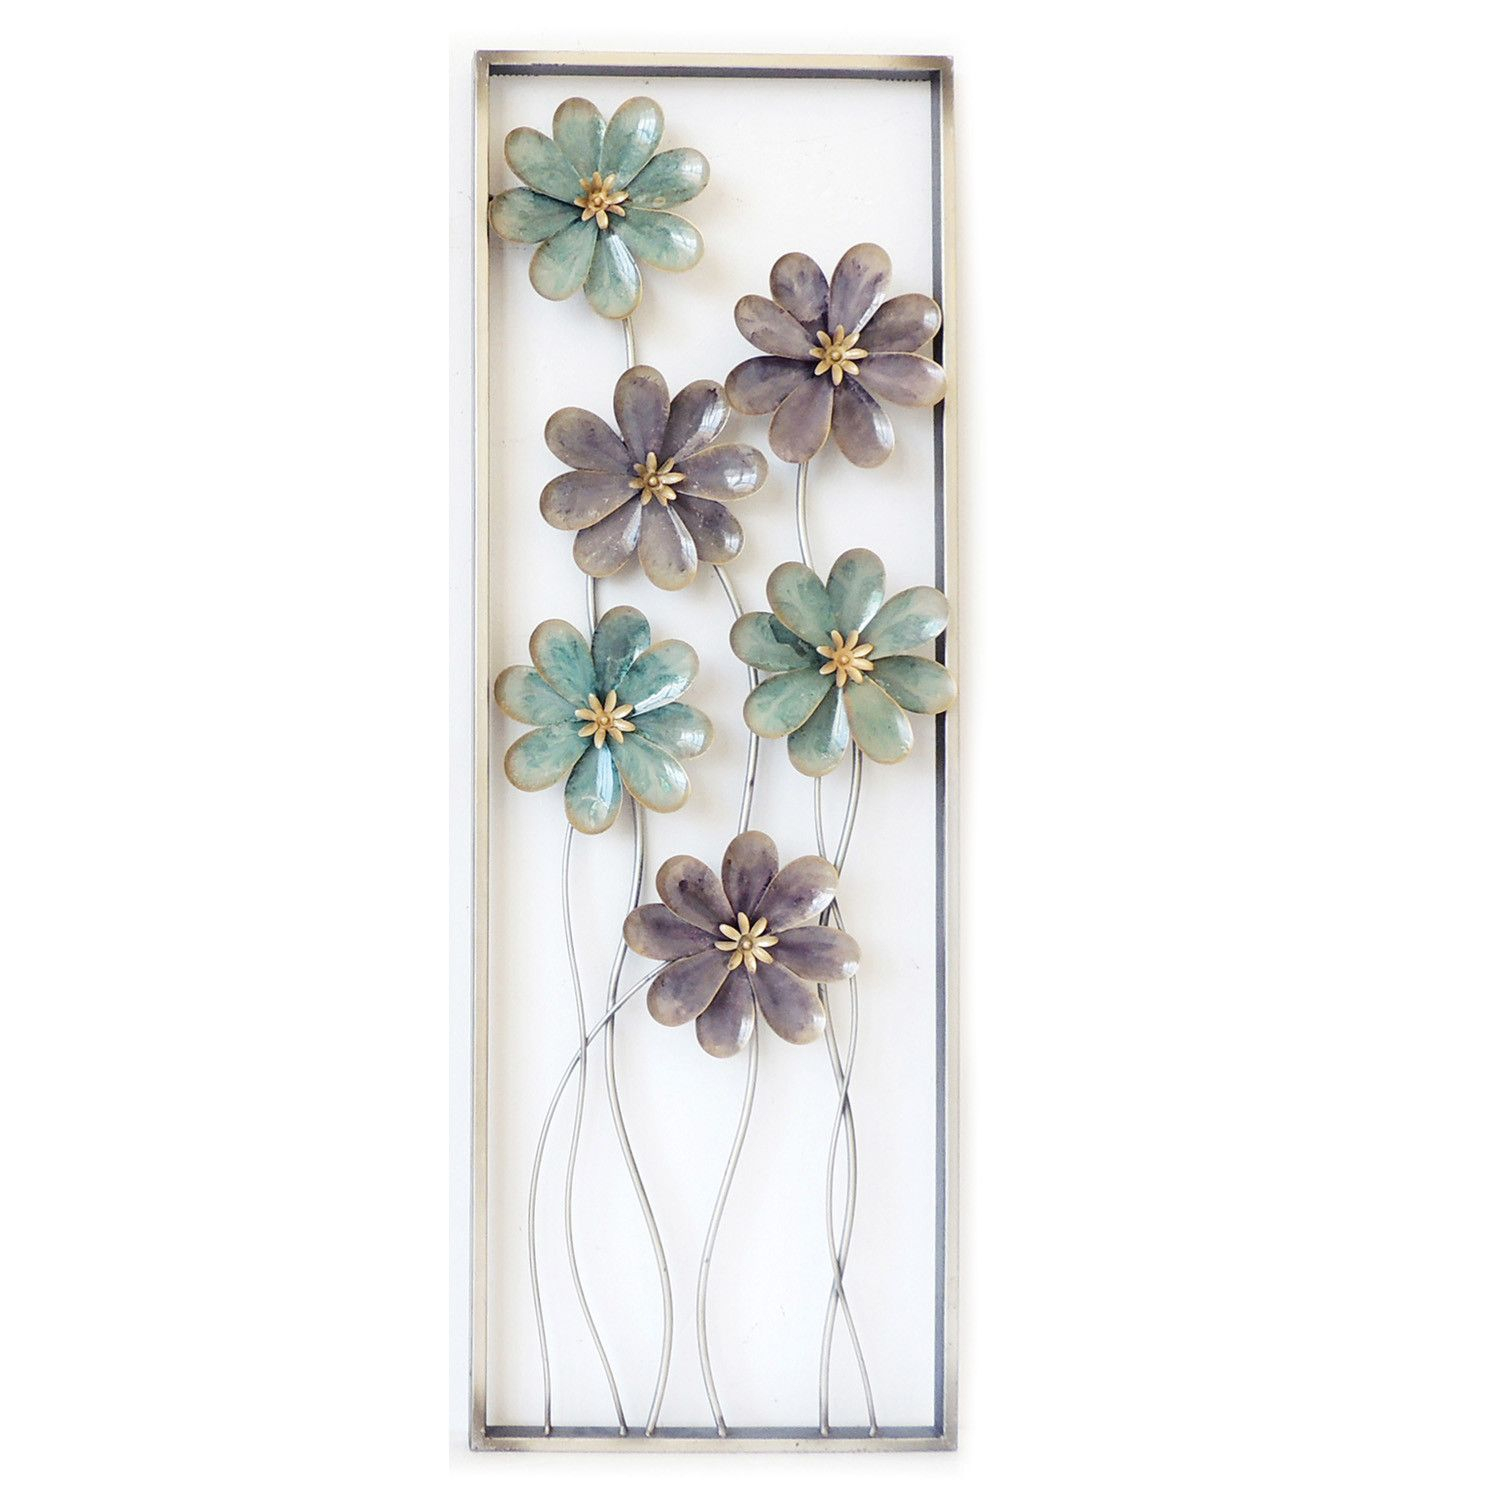 2020 6 Flowers On Stem Wall Decor (View 1 of 20)